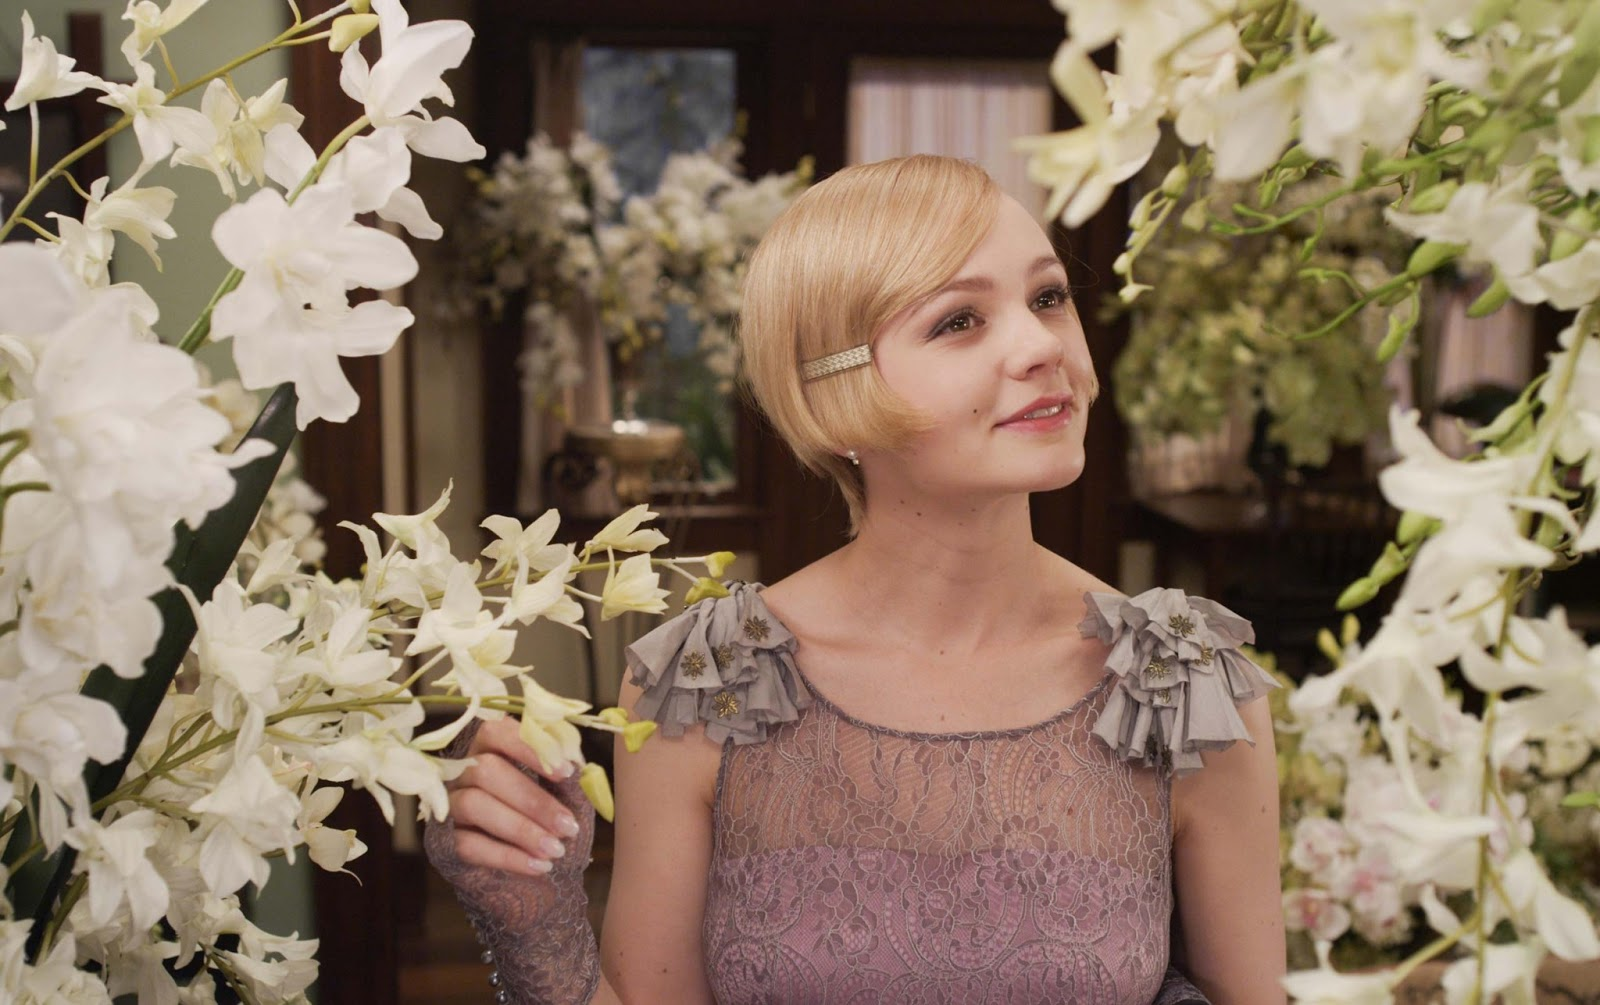 8Carey-Mulligan-The-Great-Gatsby-Best-Actress-2013